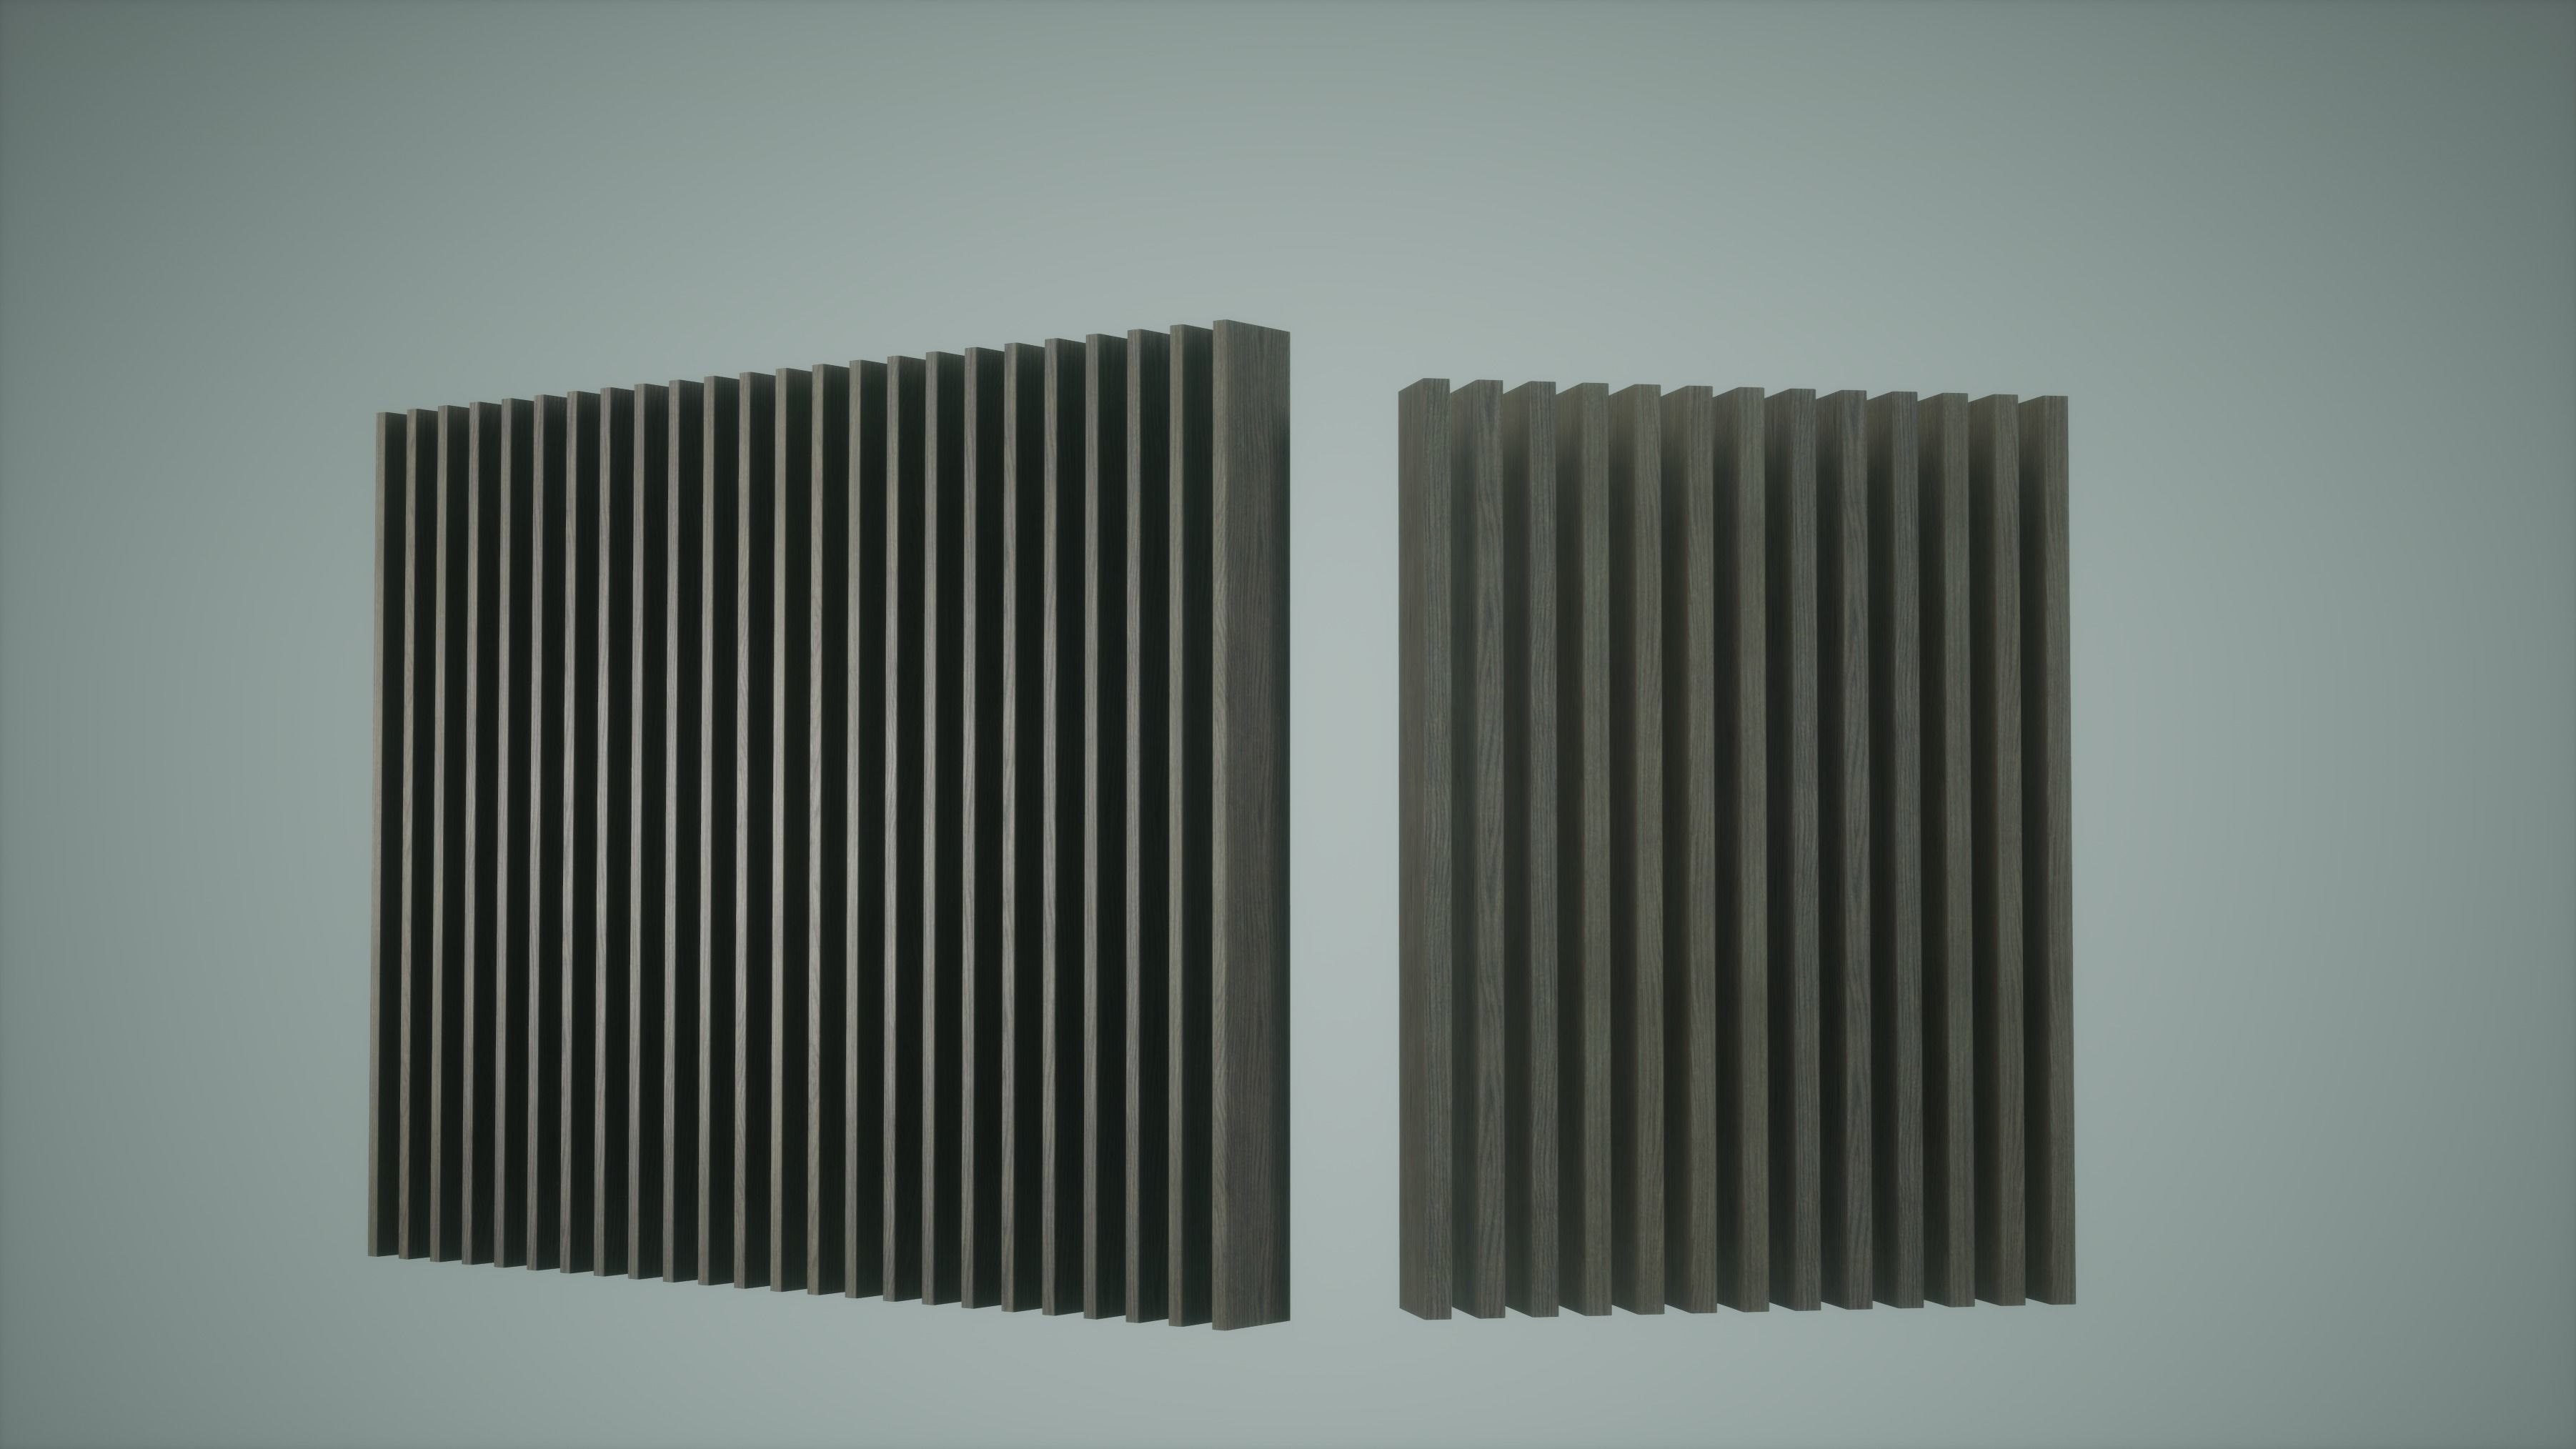 Wooden Partition Low Poly Game Ready